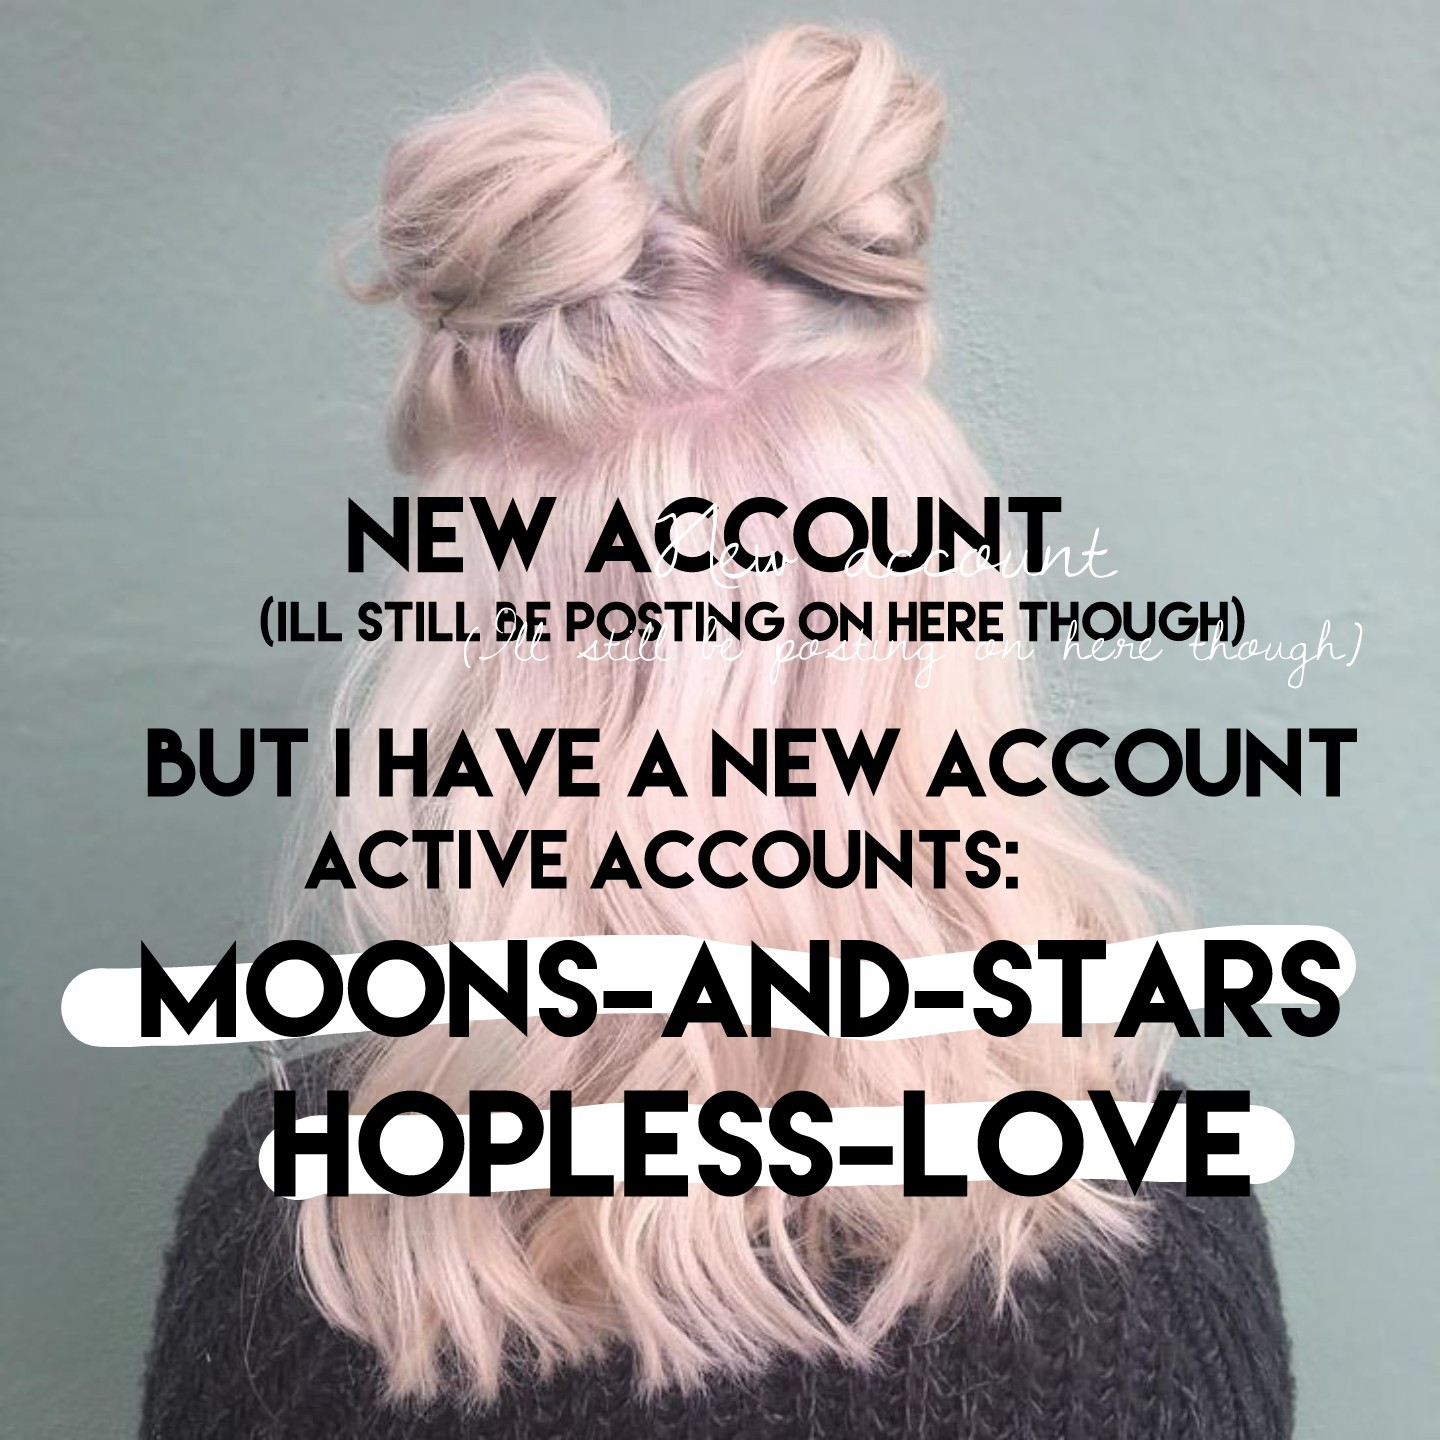 new account: moons-and-stars